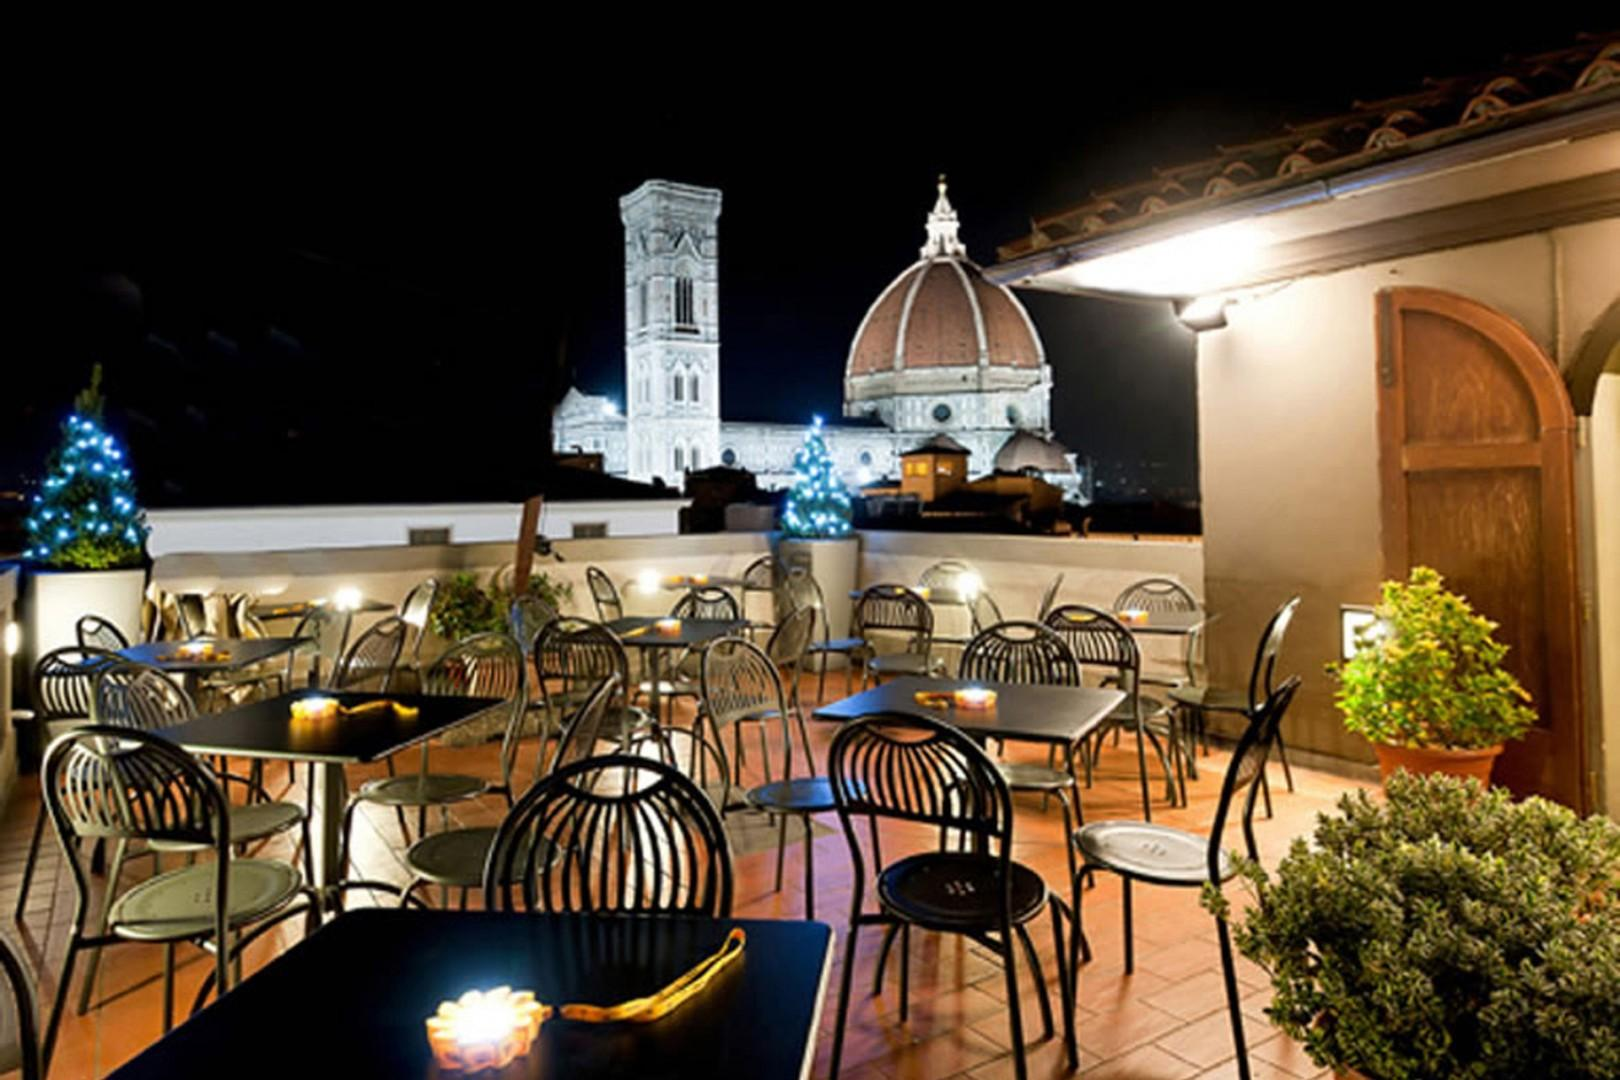 Savor the view from the rooftop cafe of Rinascente department store.